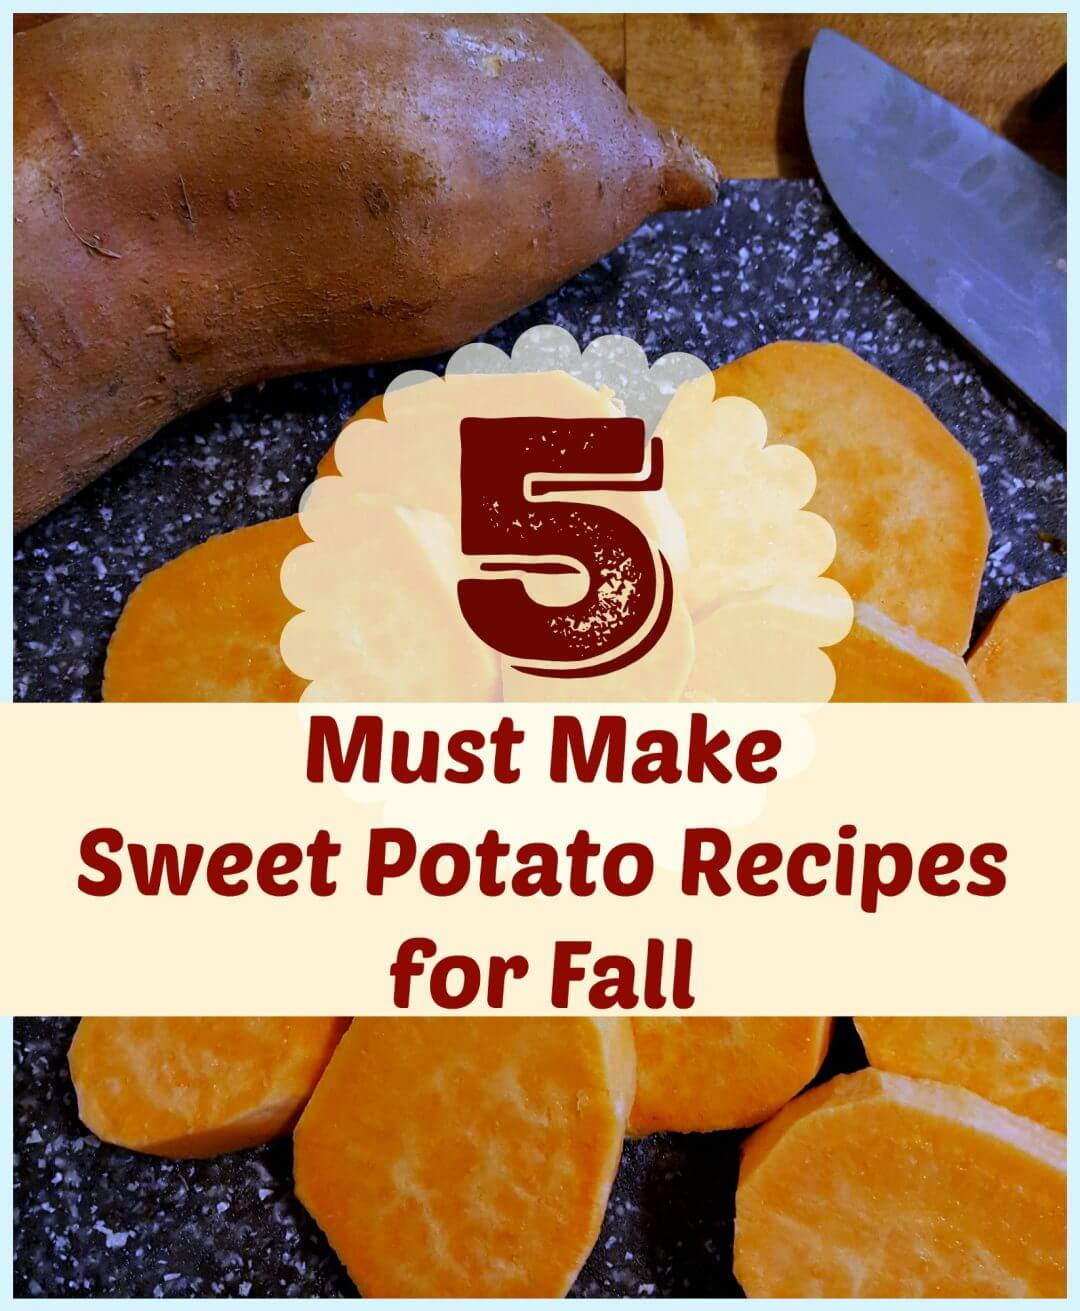 Five Southern sweet potato recipes to enjoy this fall